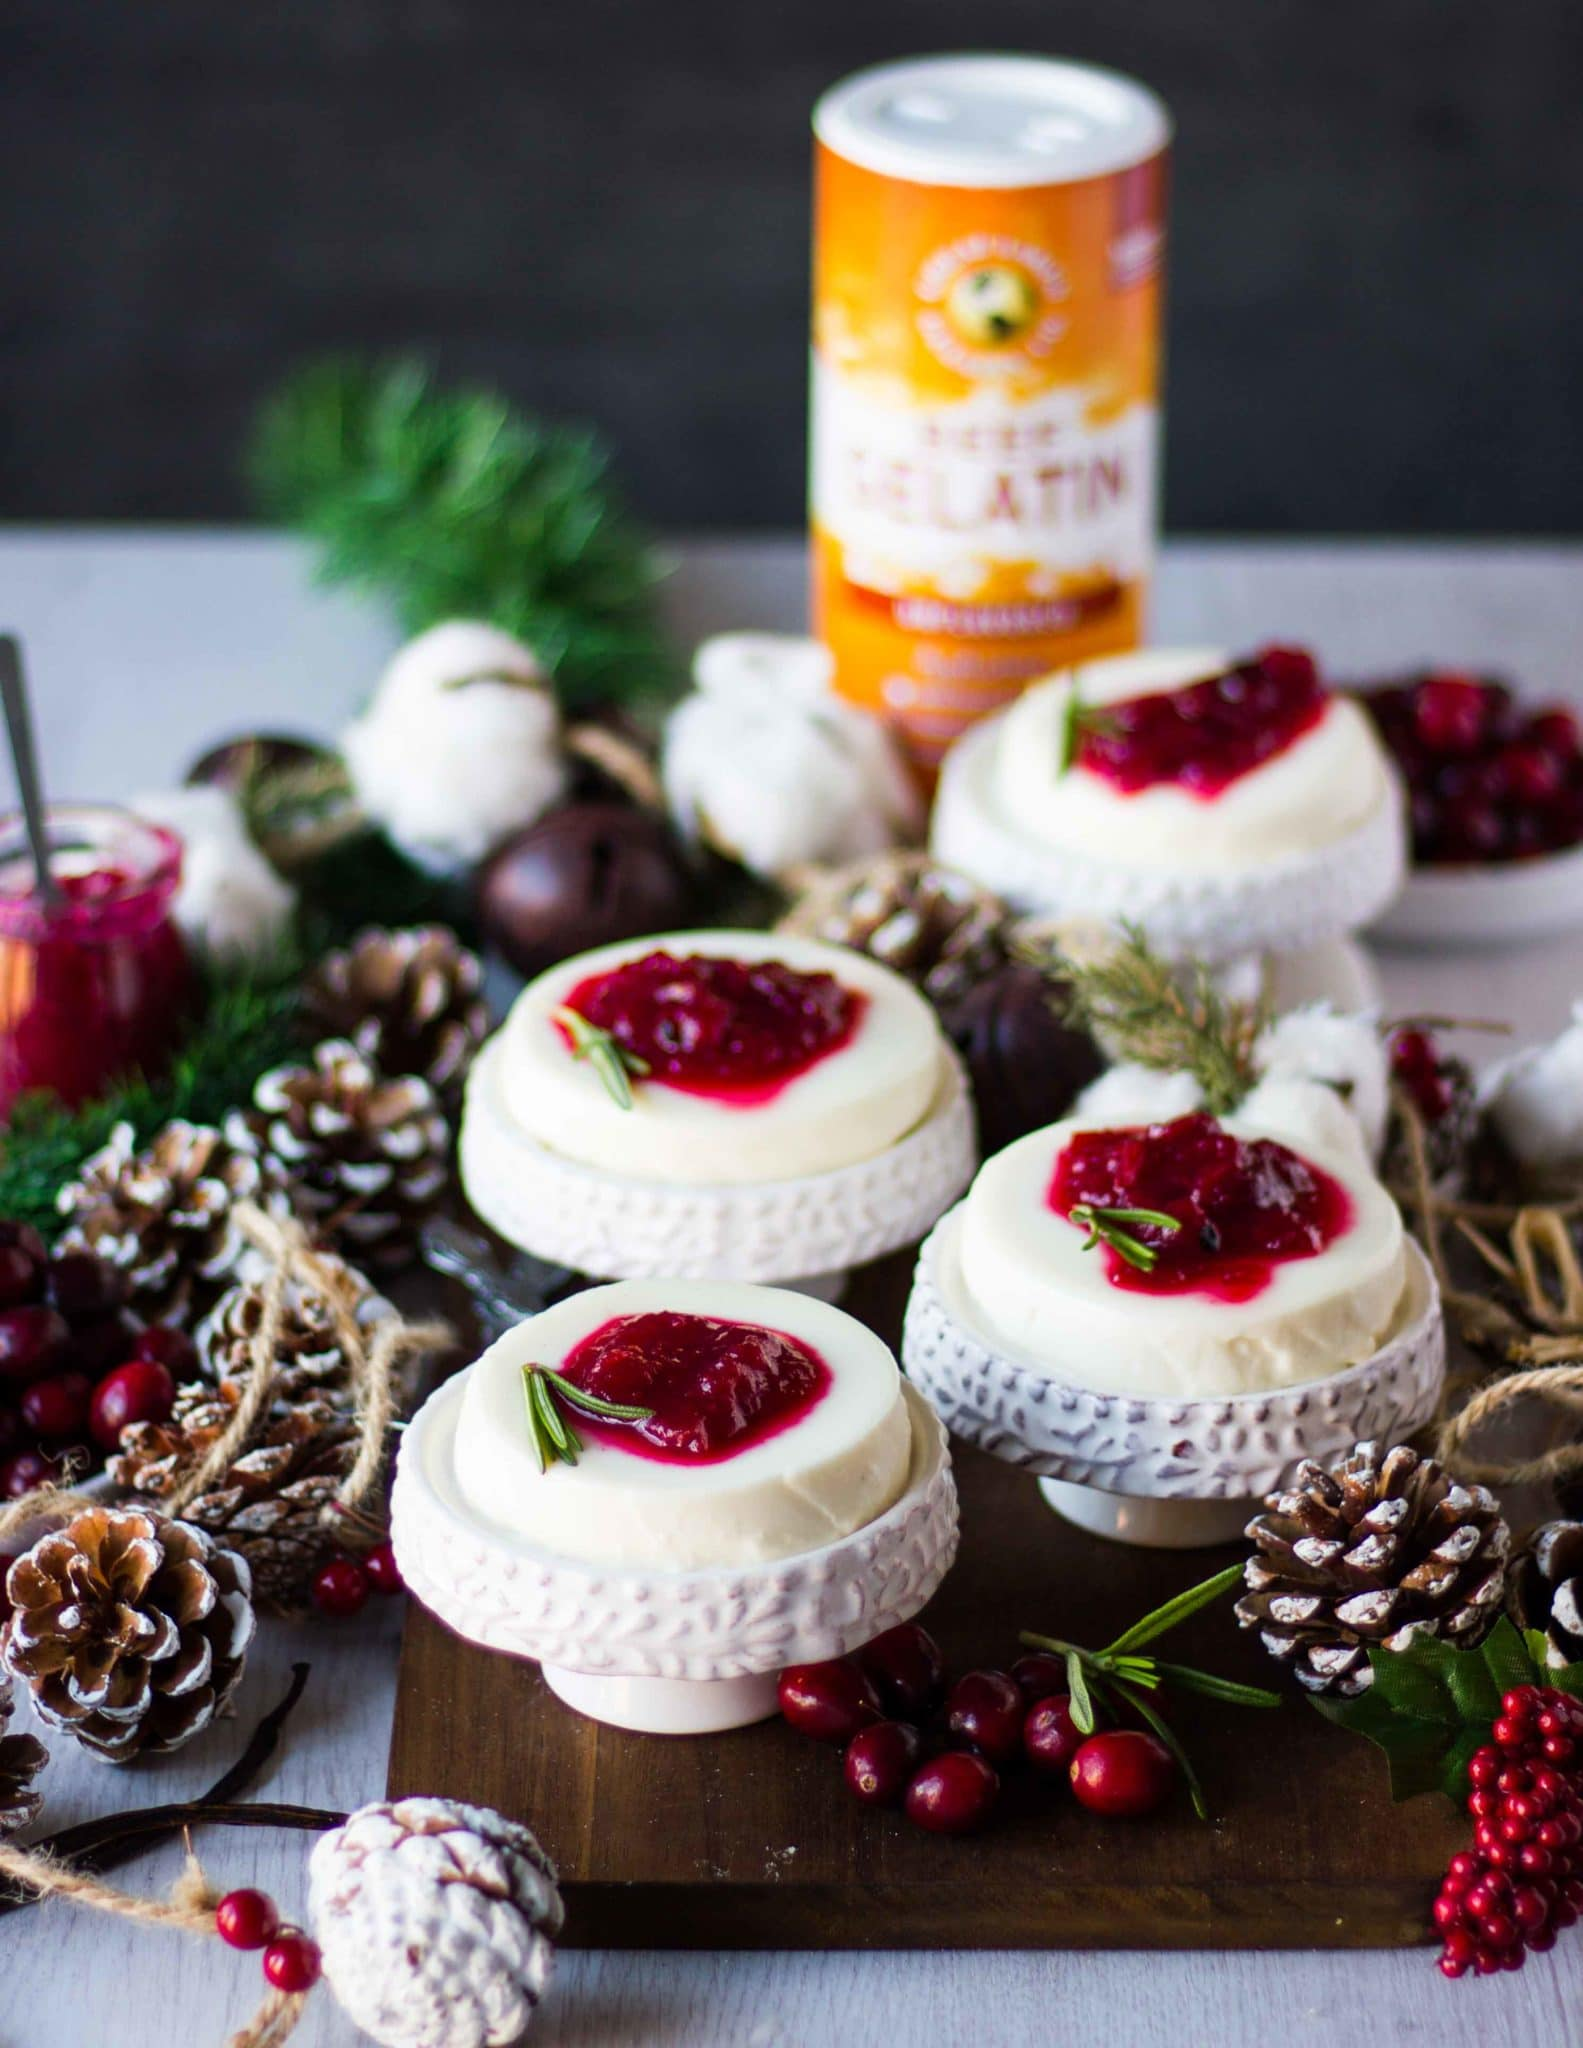 individual servings of four panna cotta recipe on serving plates finished with cranberry sauce and surrounded by fresh cranberries and wooden cones